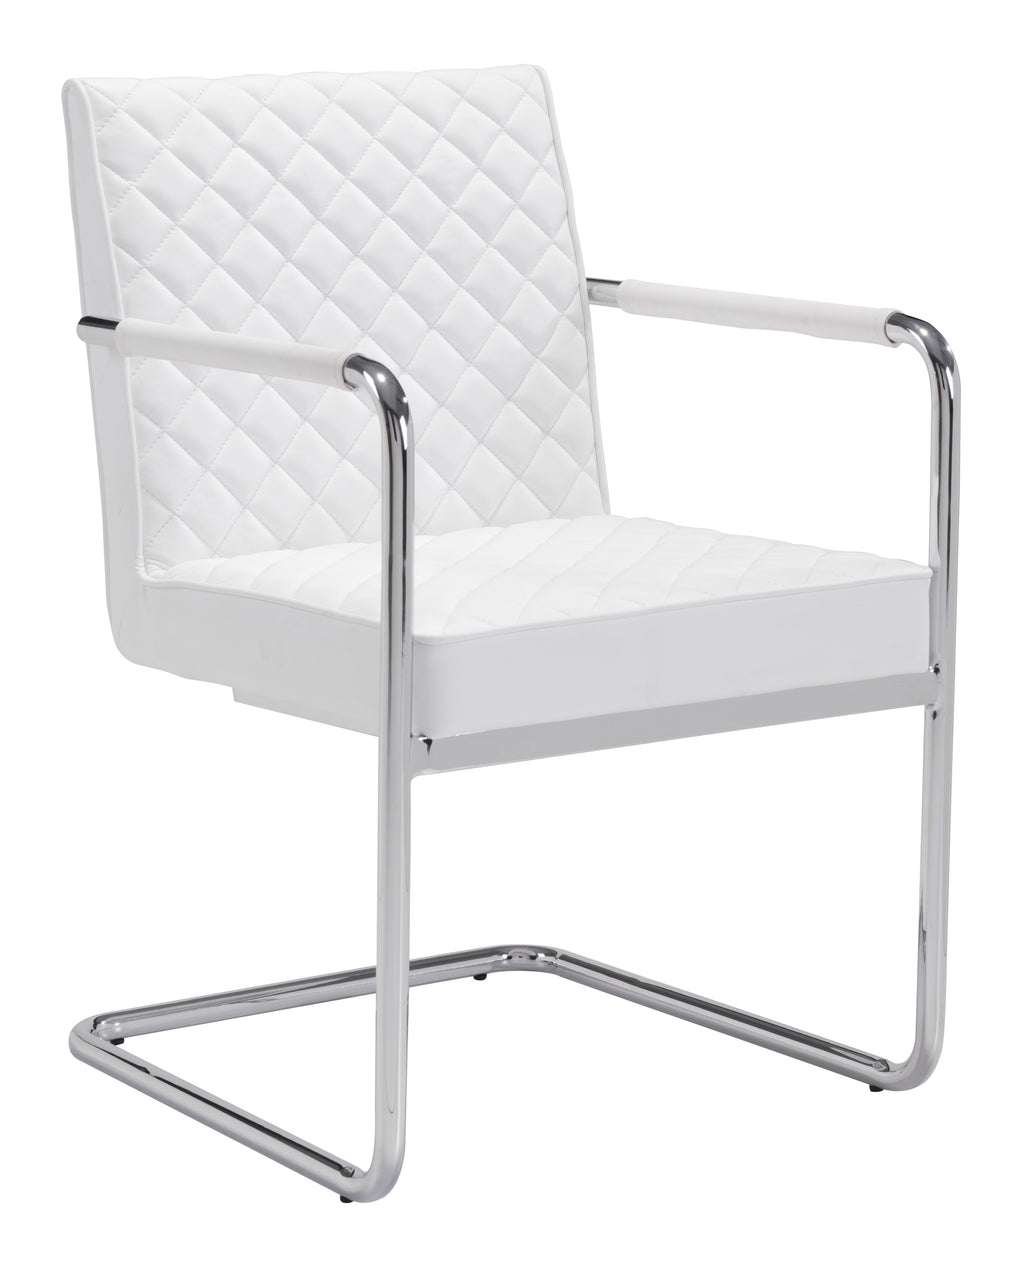 Quilt Dining Chair (White)